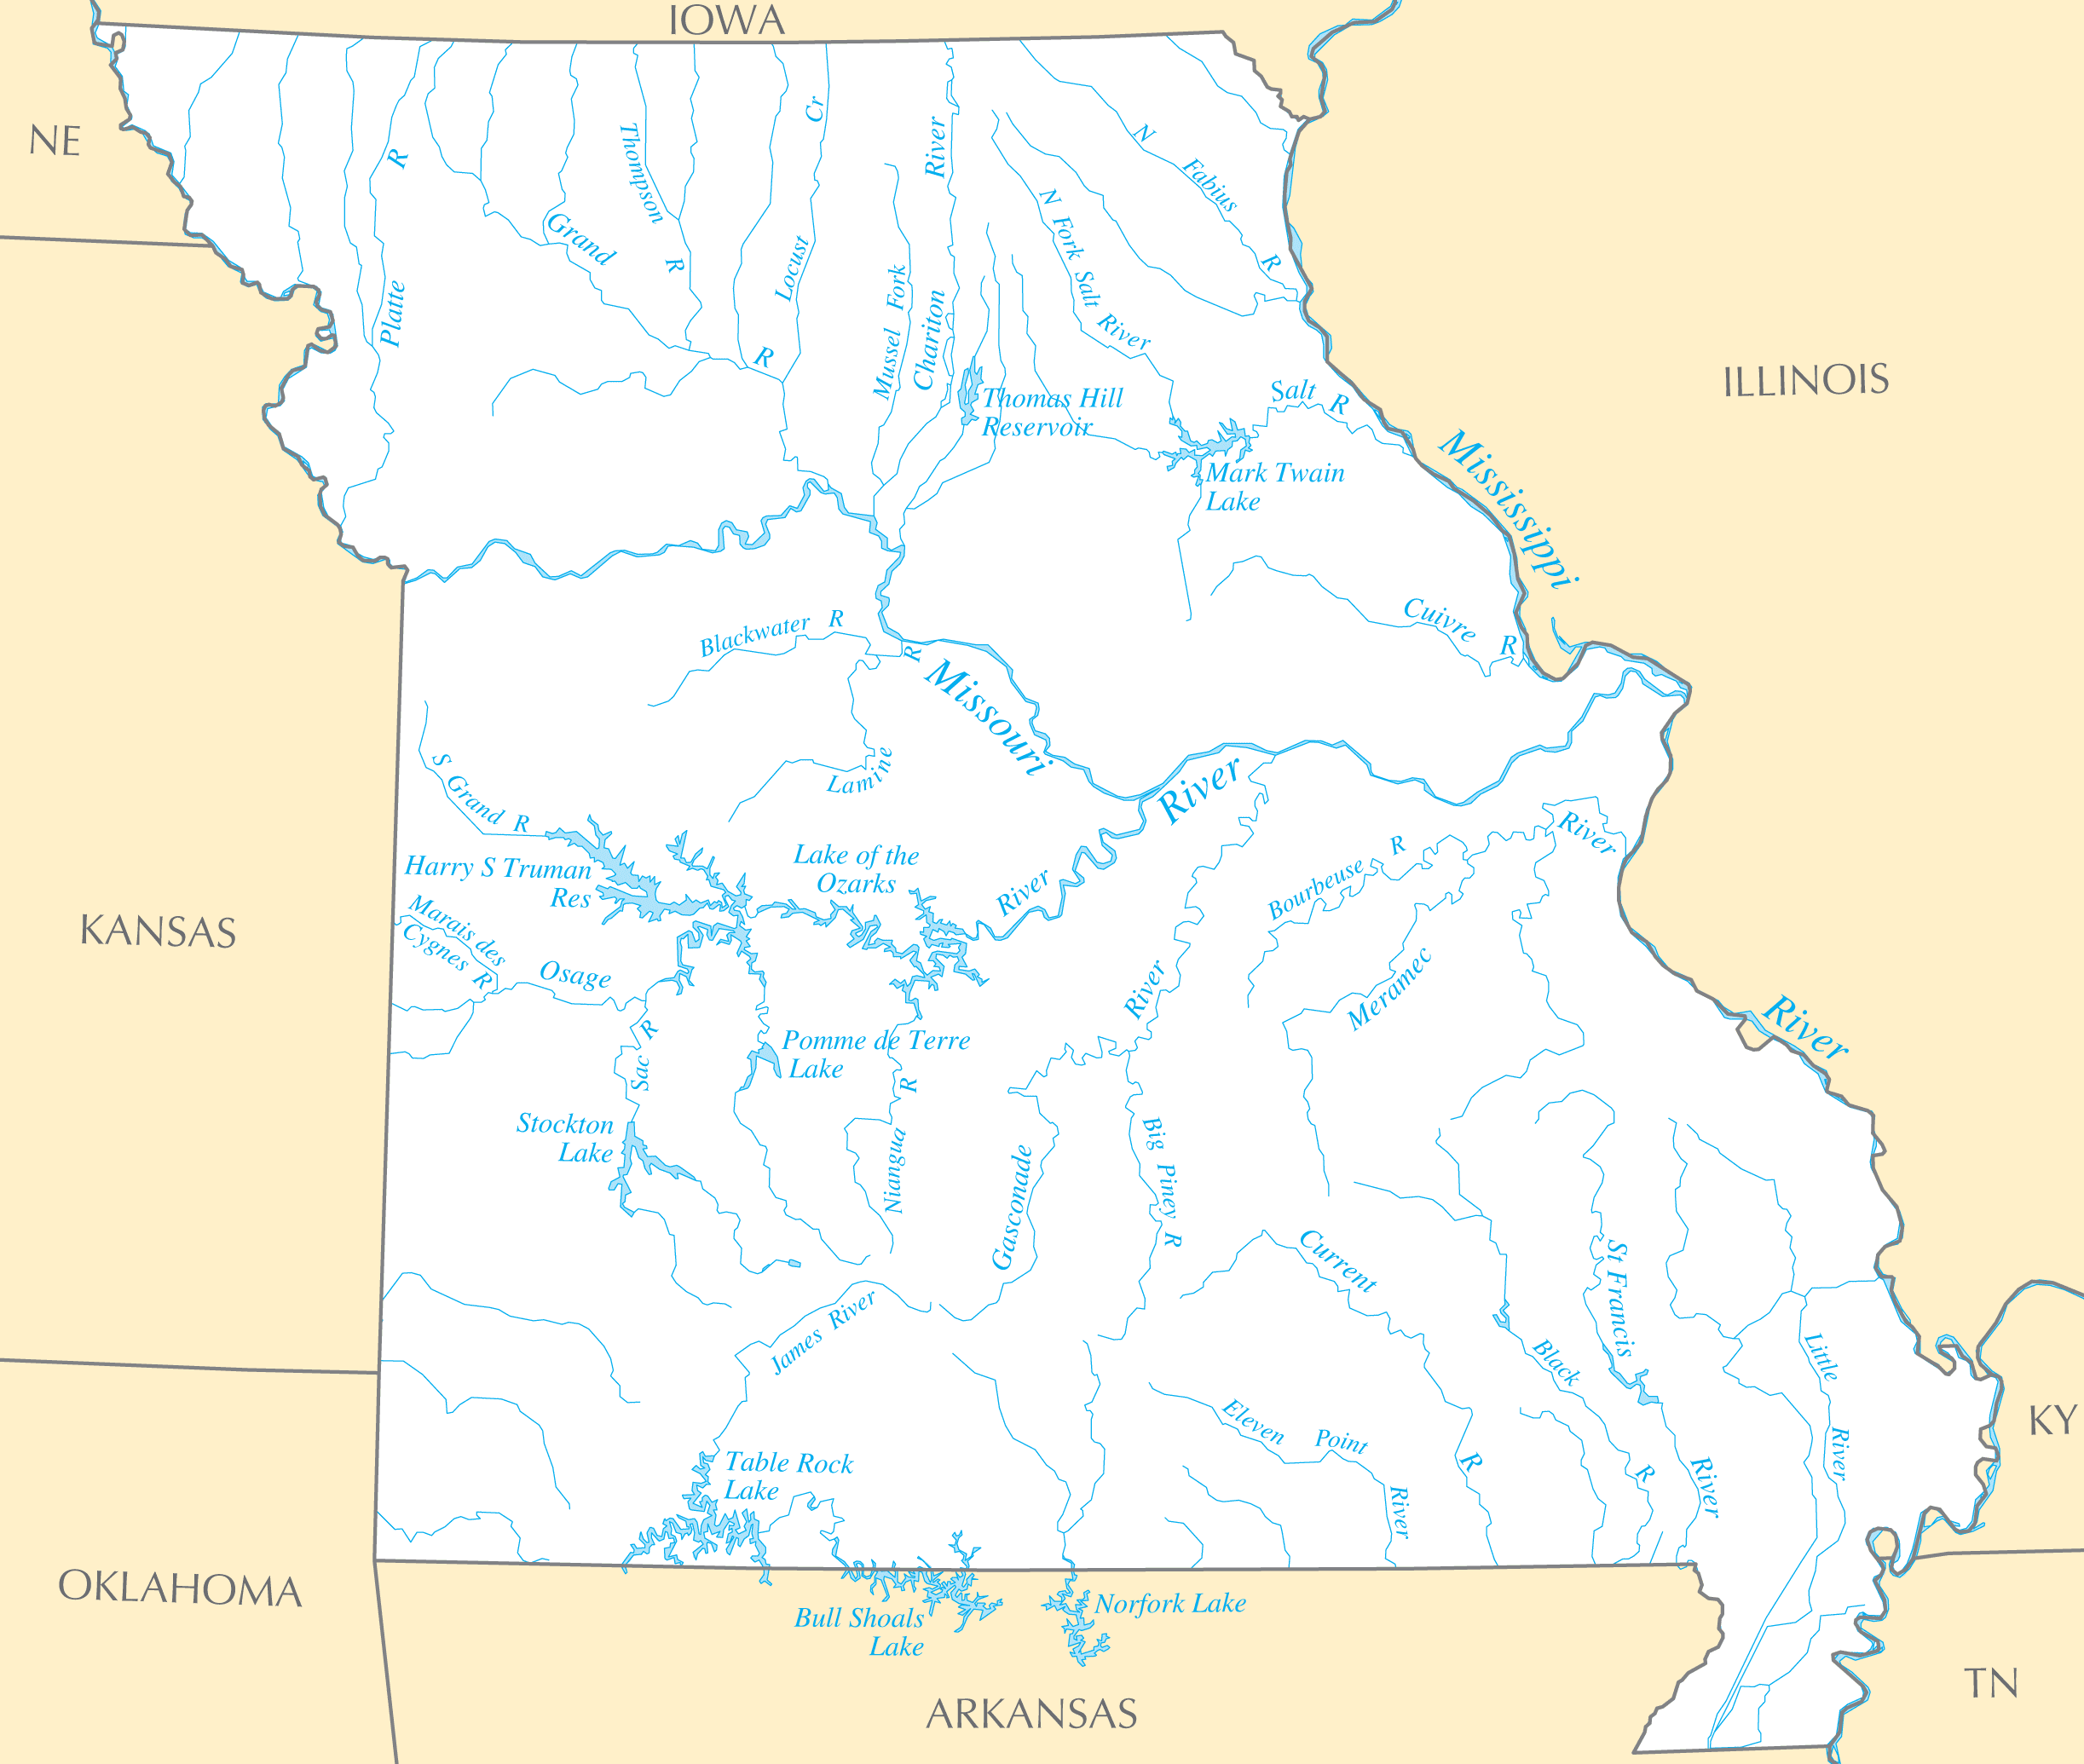 Missouri Rivers And Lakes